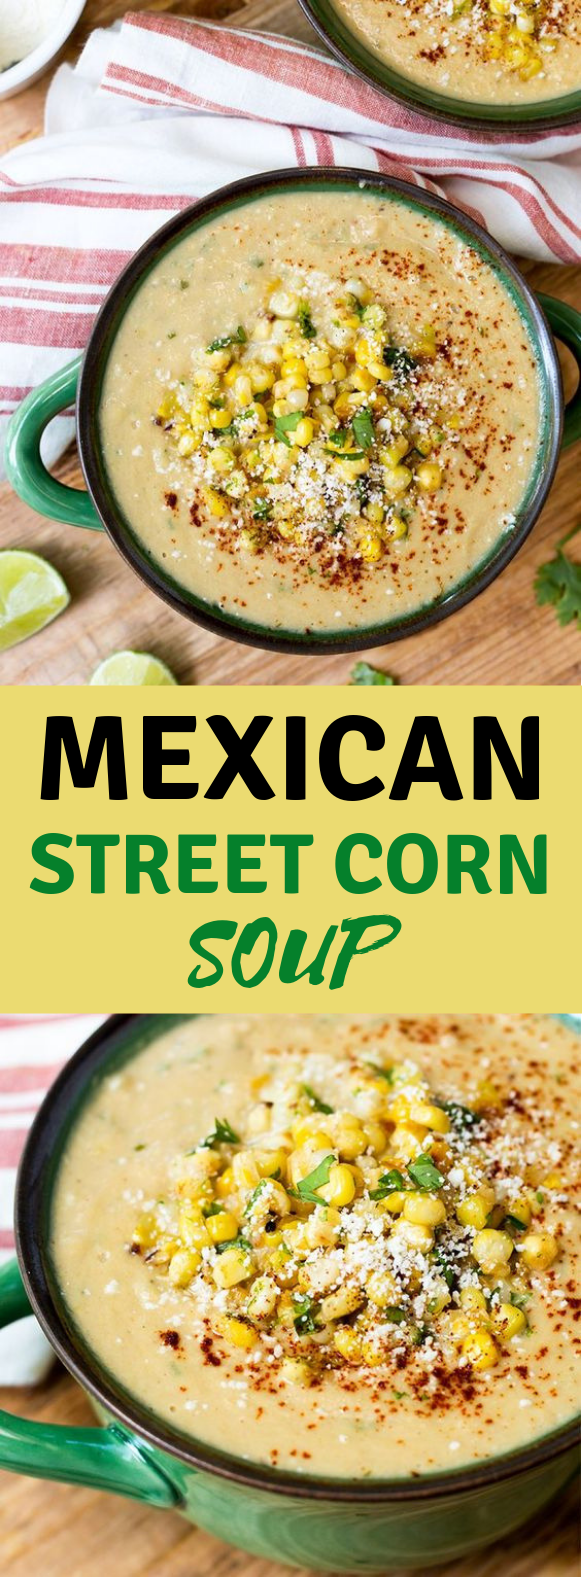 MEXICAN STREET CORN SOUP #Soup #Lunch